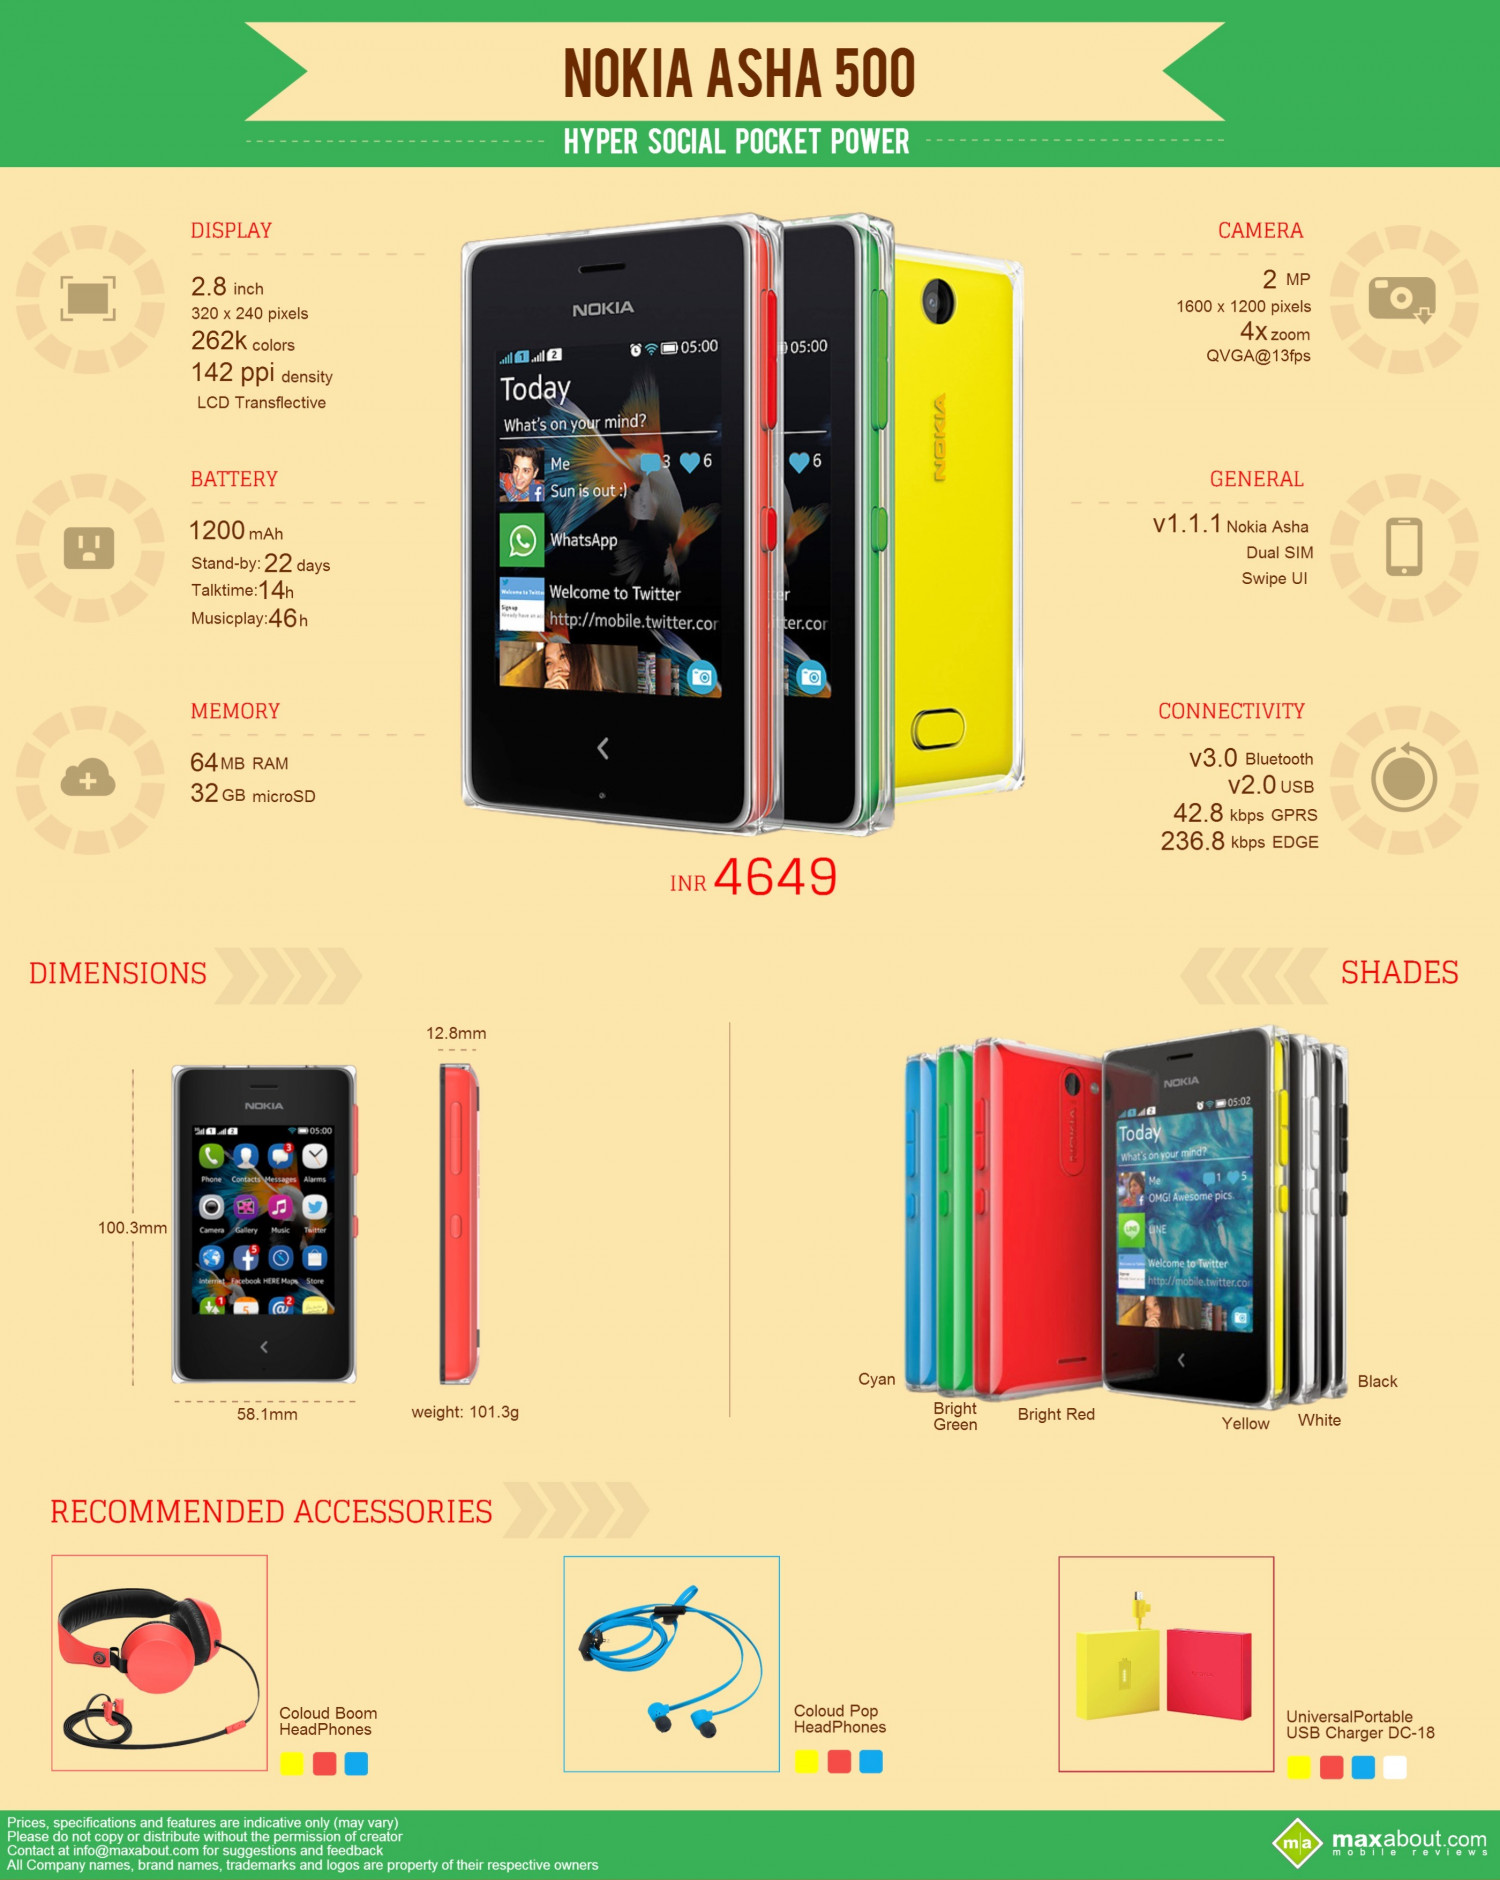 Quick Facts: Nokia Asha 500 Infographic